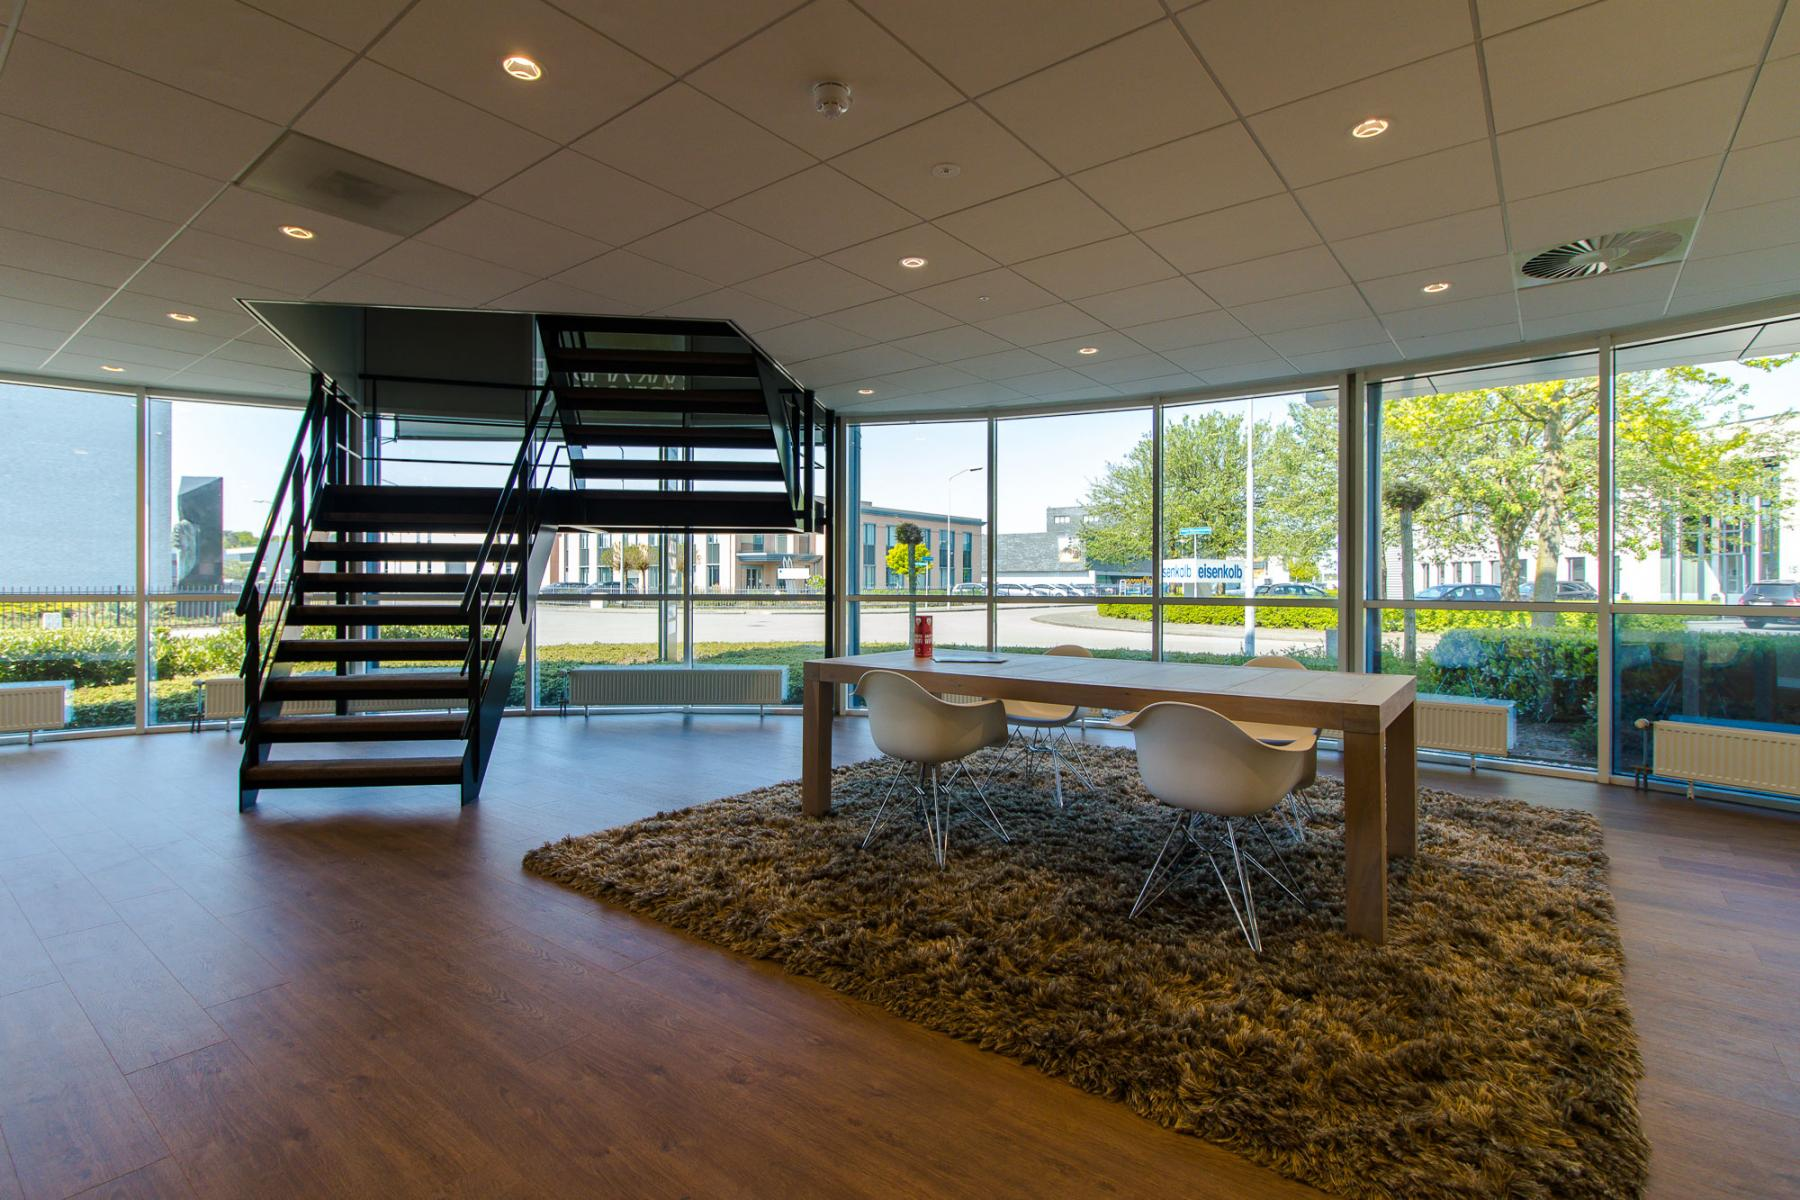 Office spaces for rent at the Marinus van Meelweg in Eindhoven